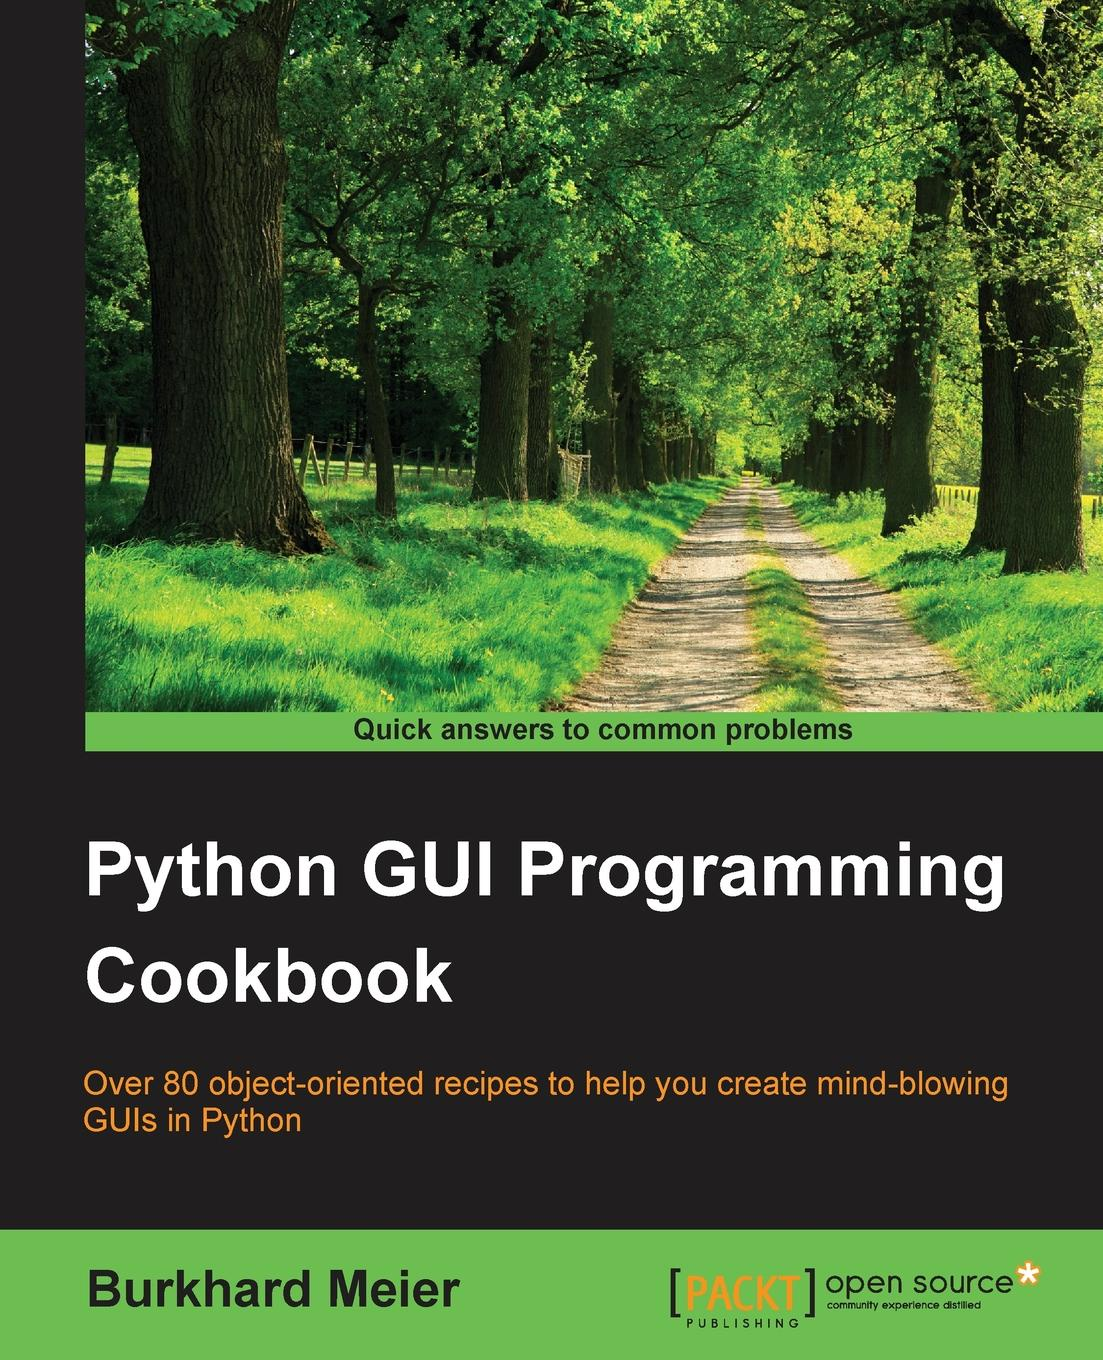 Burkhard A. Meier Python GUI Programming Cookbook adam stewart python programming python programming for beginners a comprehensive guide to learnings the basics of python programming